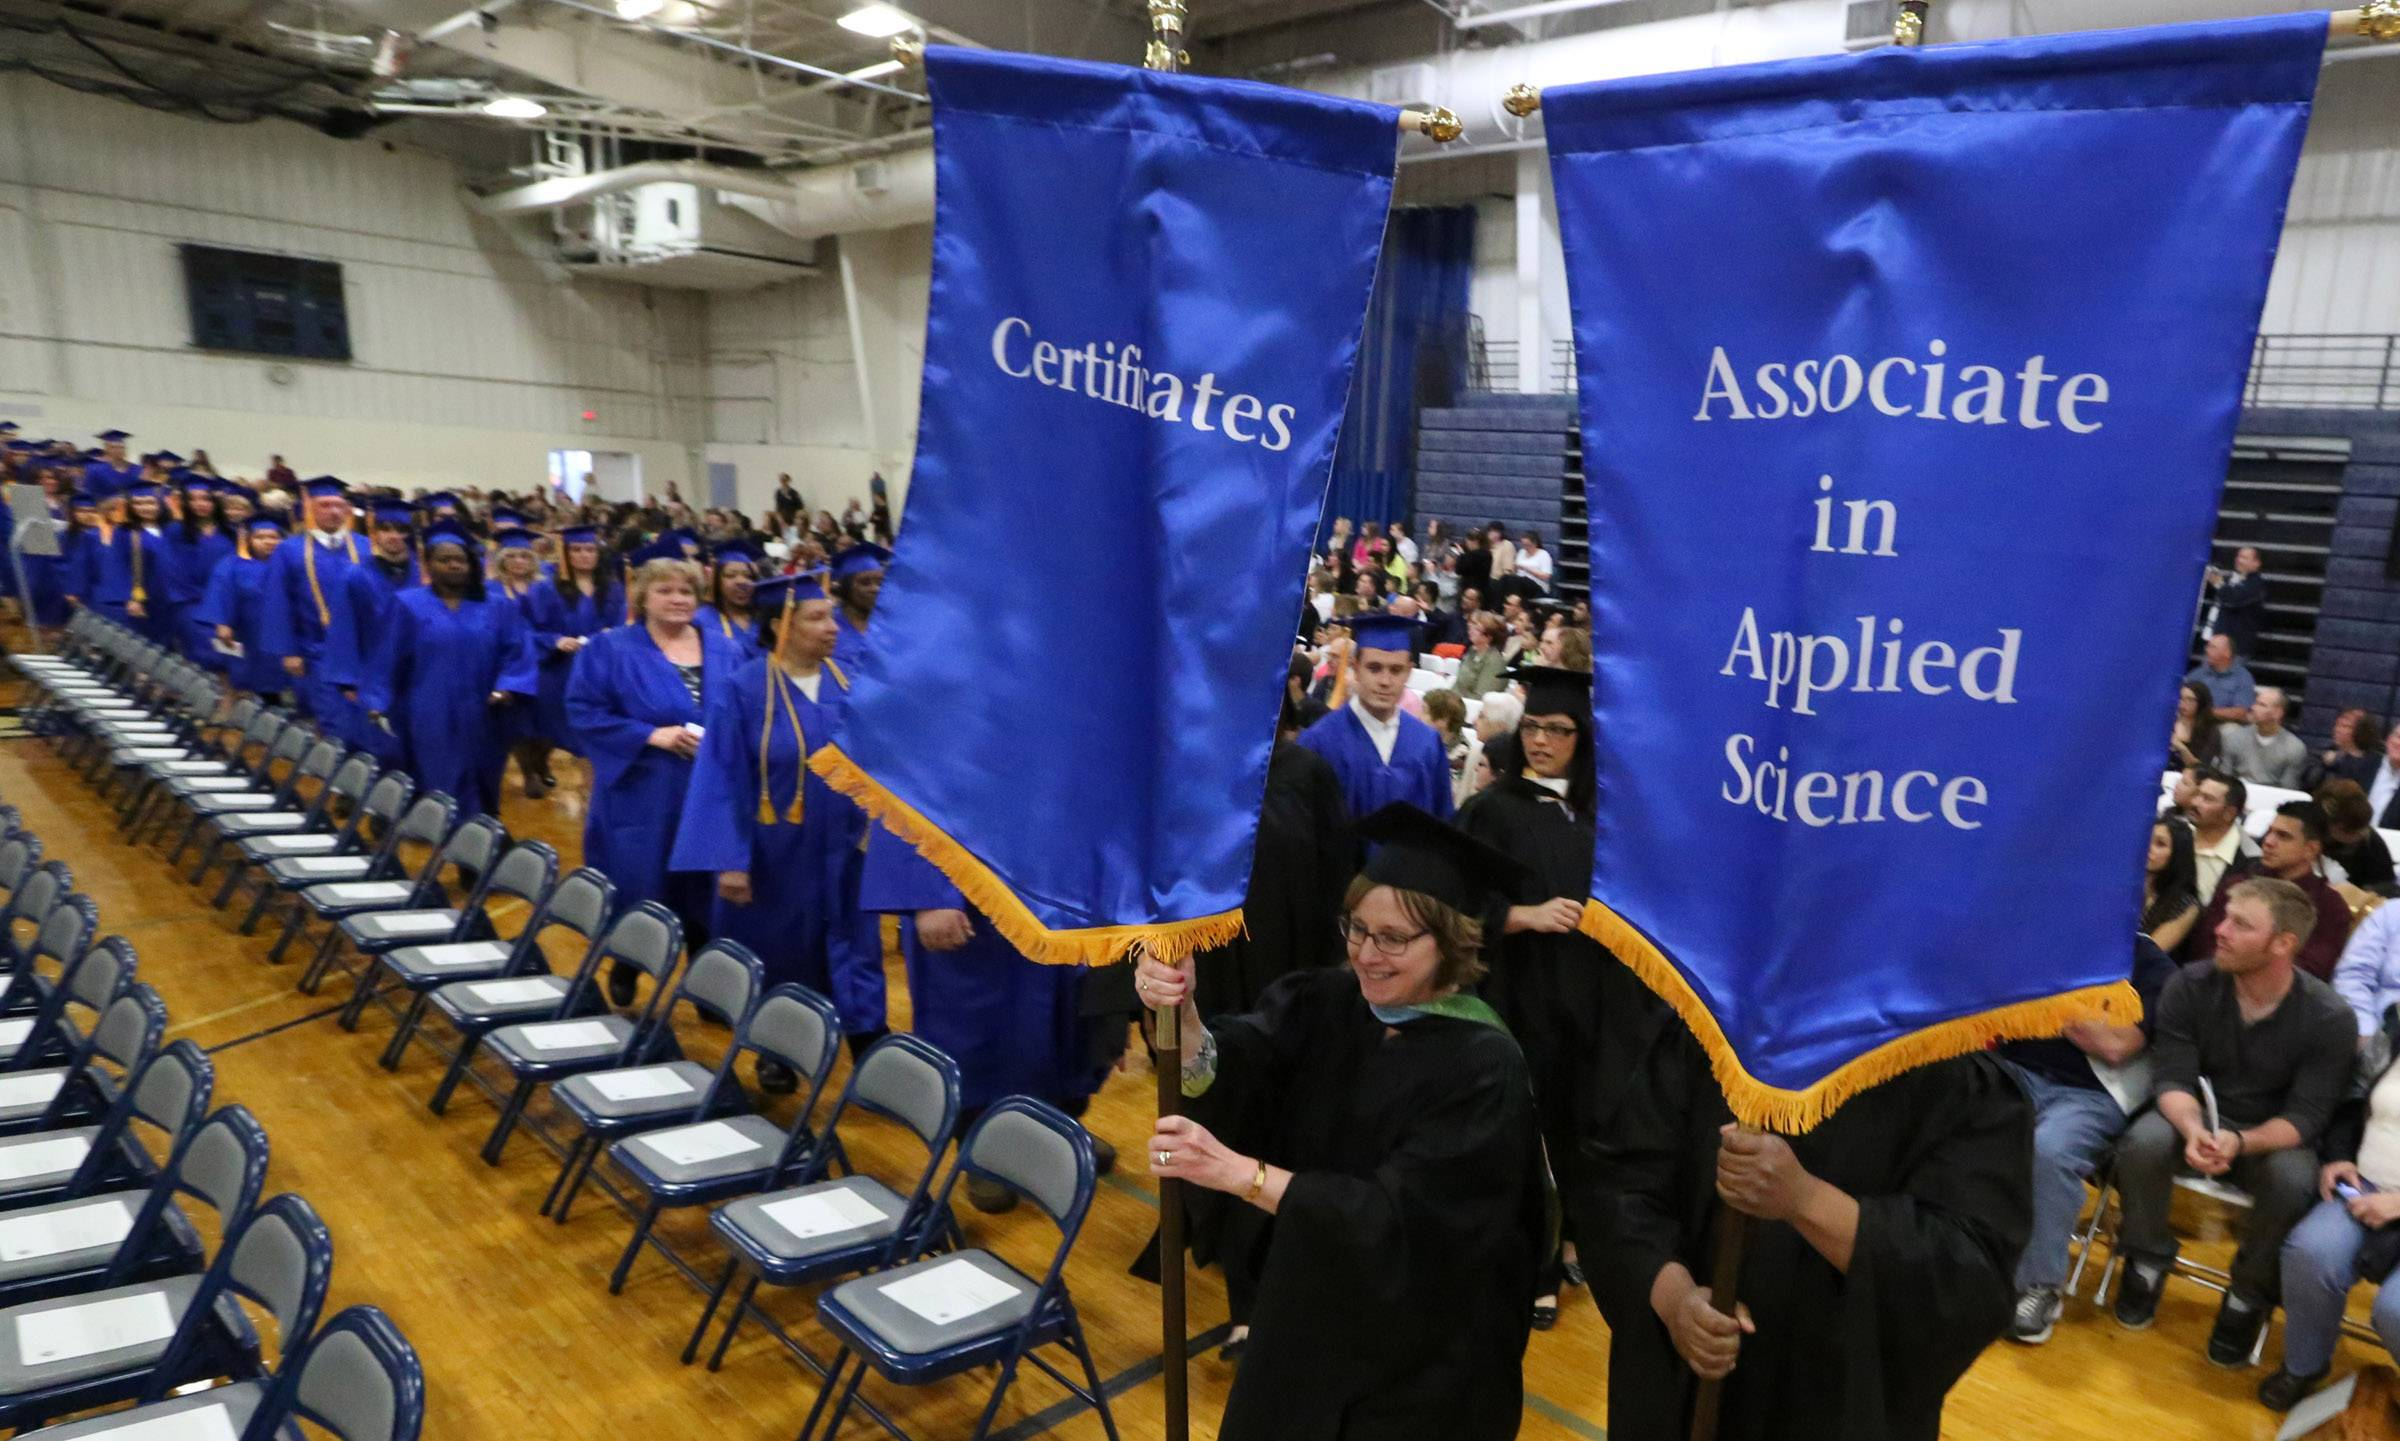 Graduates march in for College of Lake County's 45th commencement afternoon ceremony on Saturday in Grayslake.